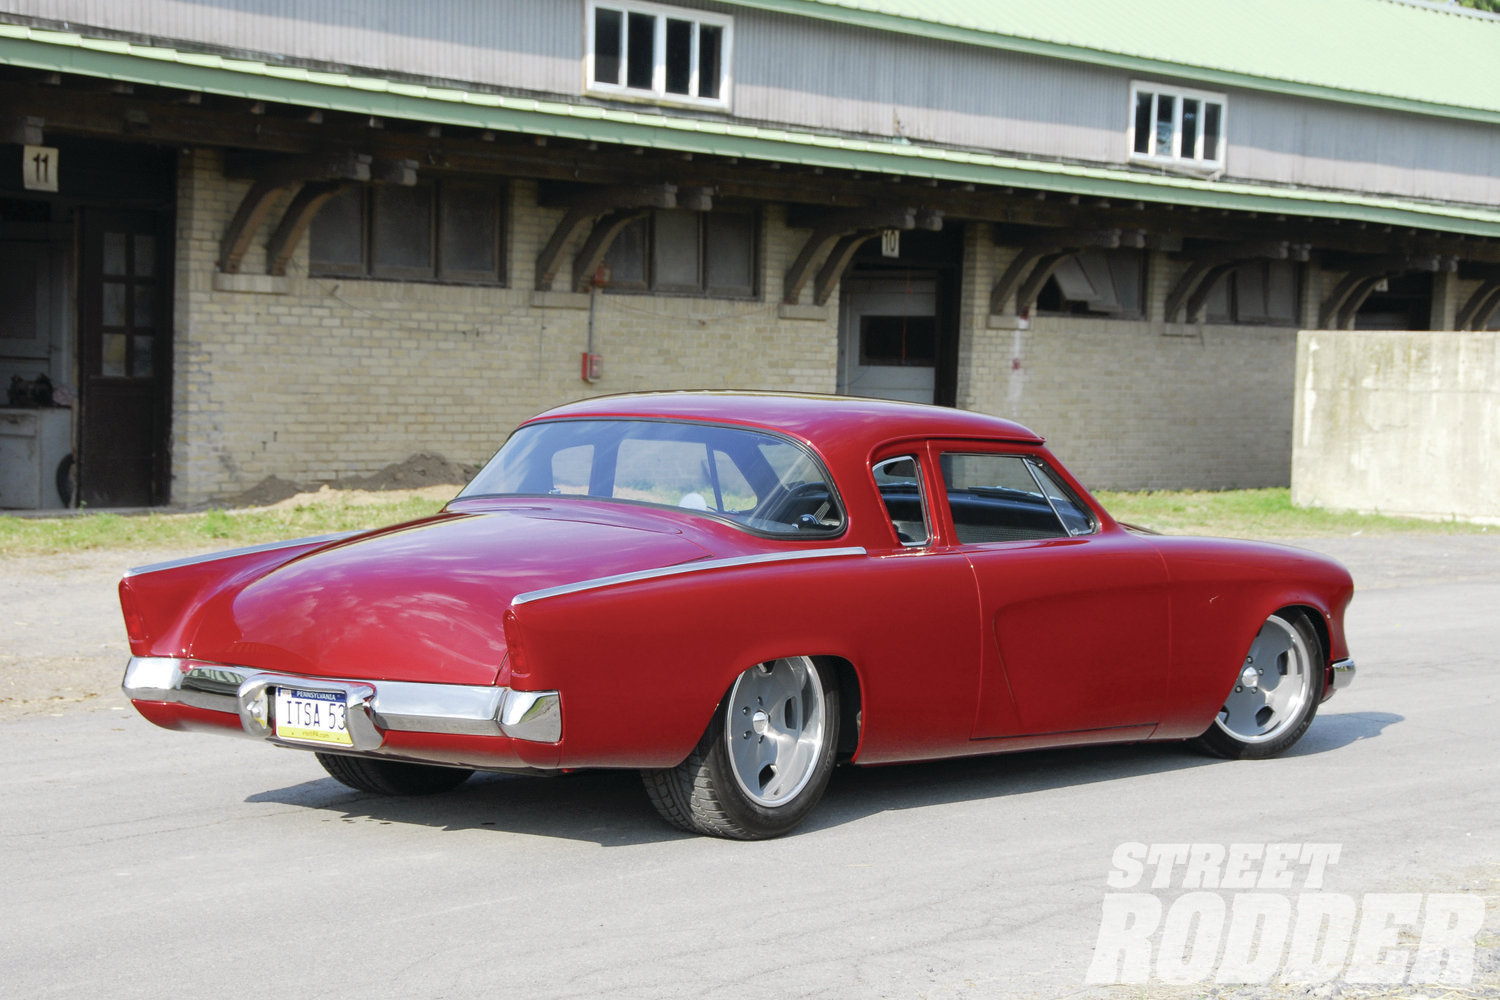 Coated in PPG Inferno Red gloss, accents like the pinched and tucked bumpers, extended rear quarters, and dazzling brightwork from Jon Wright's Custom Chrome Plating make it a standout.